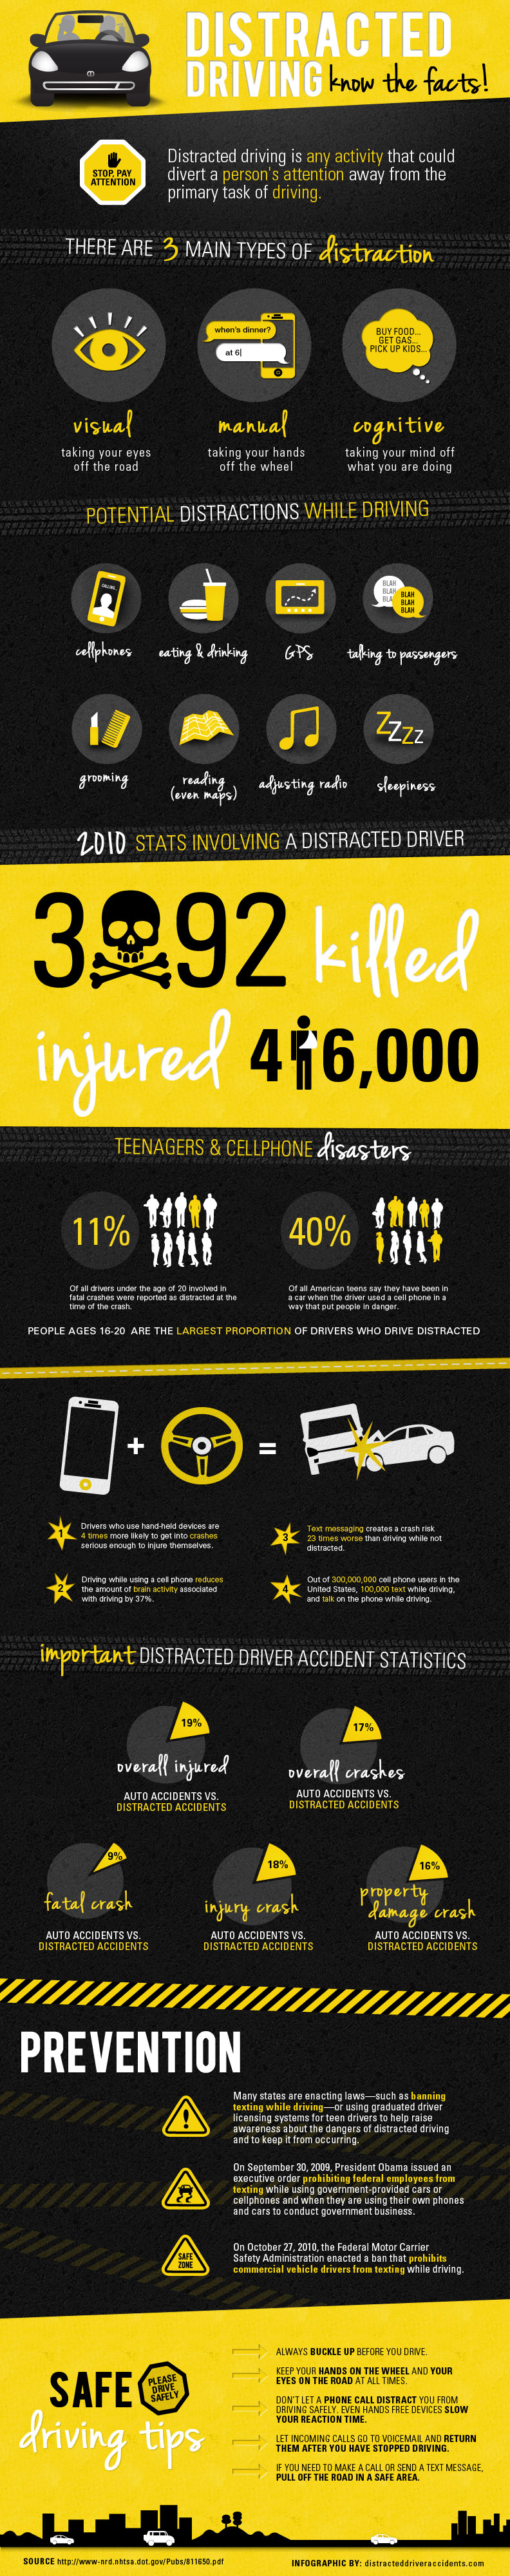 is texting while driving more dangerous than drunk driving  recent news